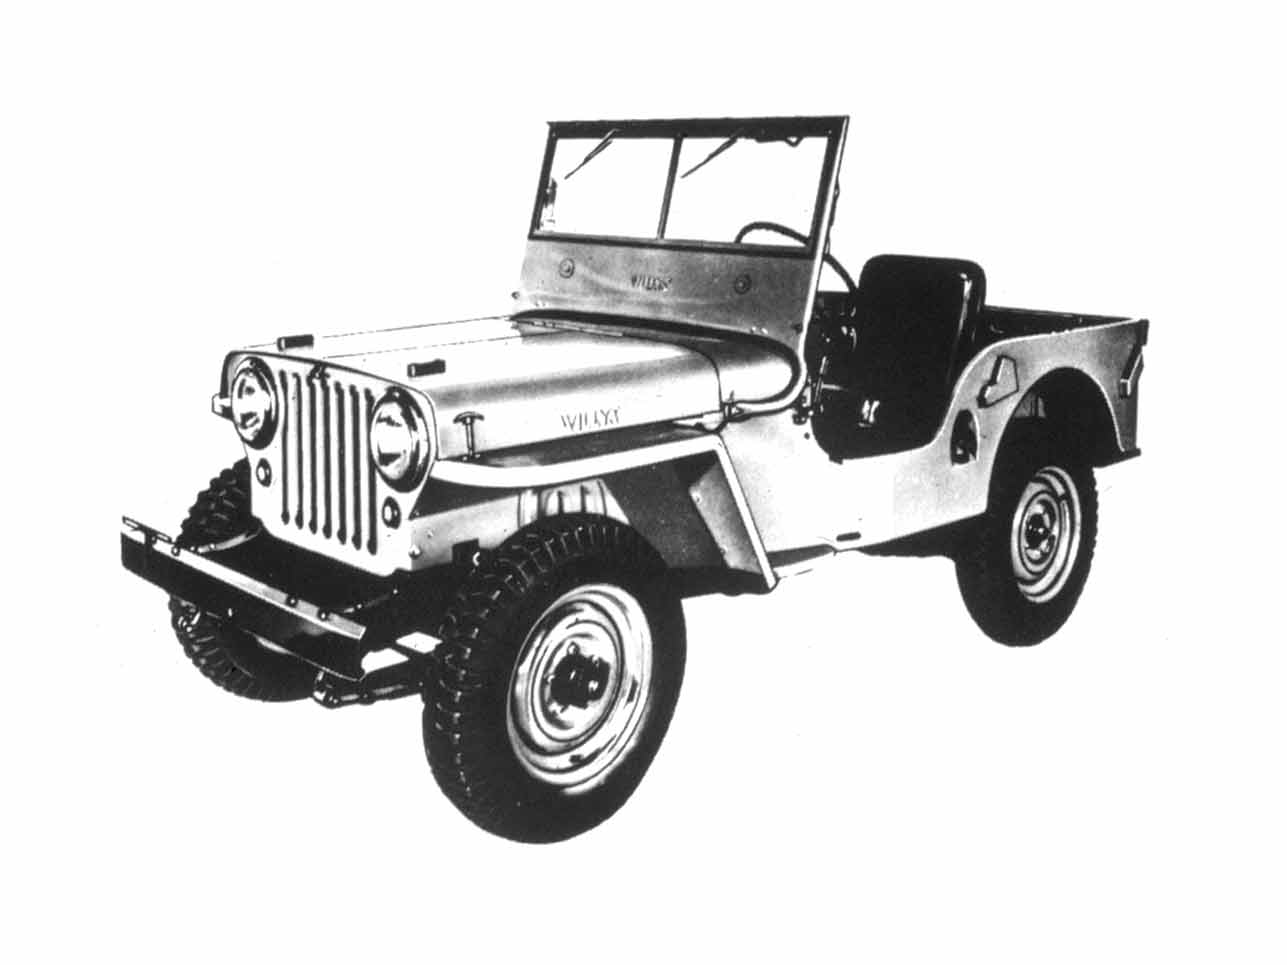 [h3]1945 – 1949, Willys Jeep CJ-2A[/h3] Die Jeep-Zivilversion (Civilian Jeep) war bereits eine Urform des Freizeitautos